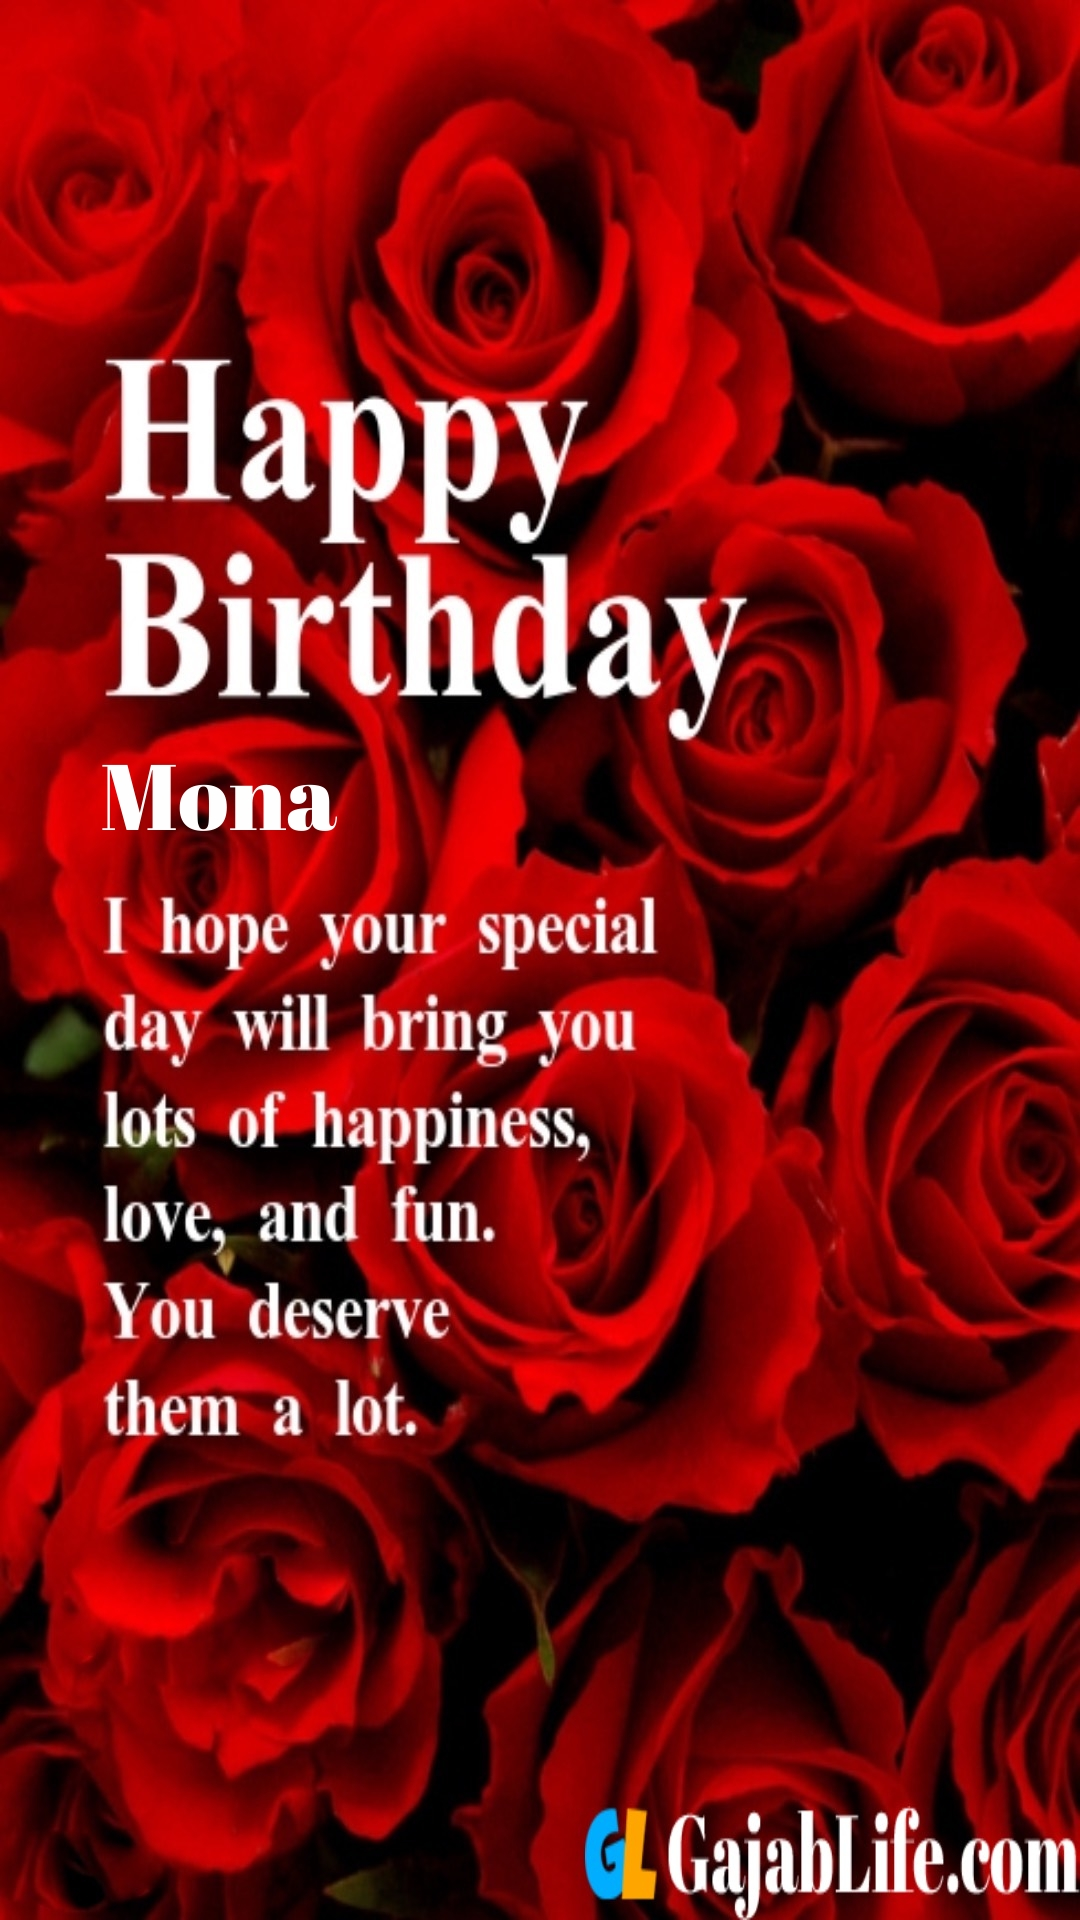 Mona Free Happy Birthday Cards With Name Male names   female names. mona free happy birthday cards with name